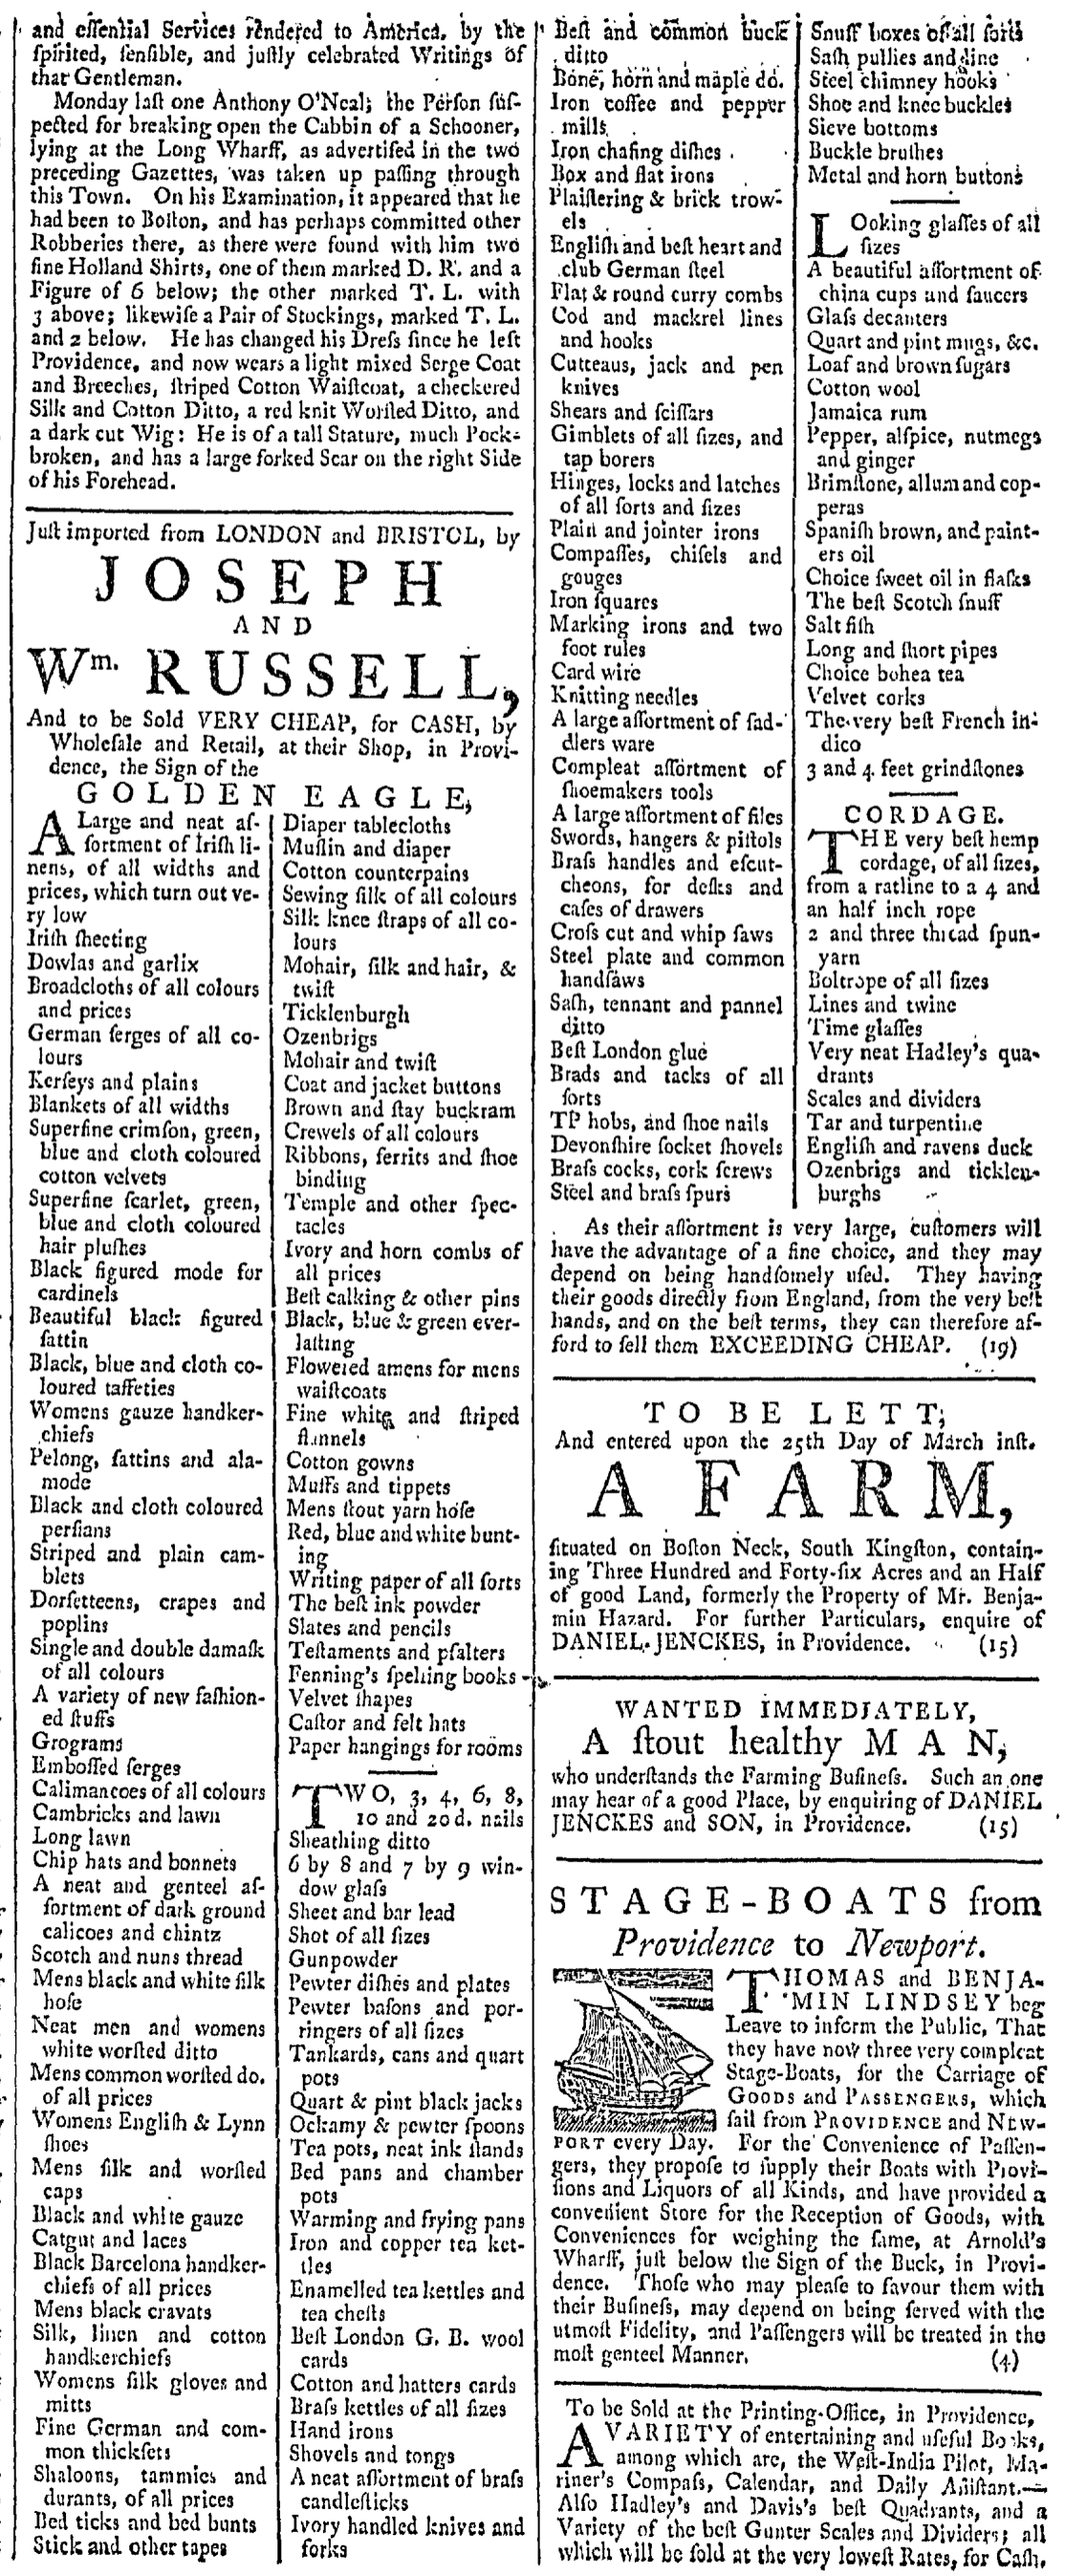 Mar 19 - 3:19:1768 Providence Gazette